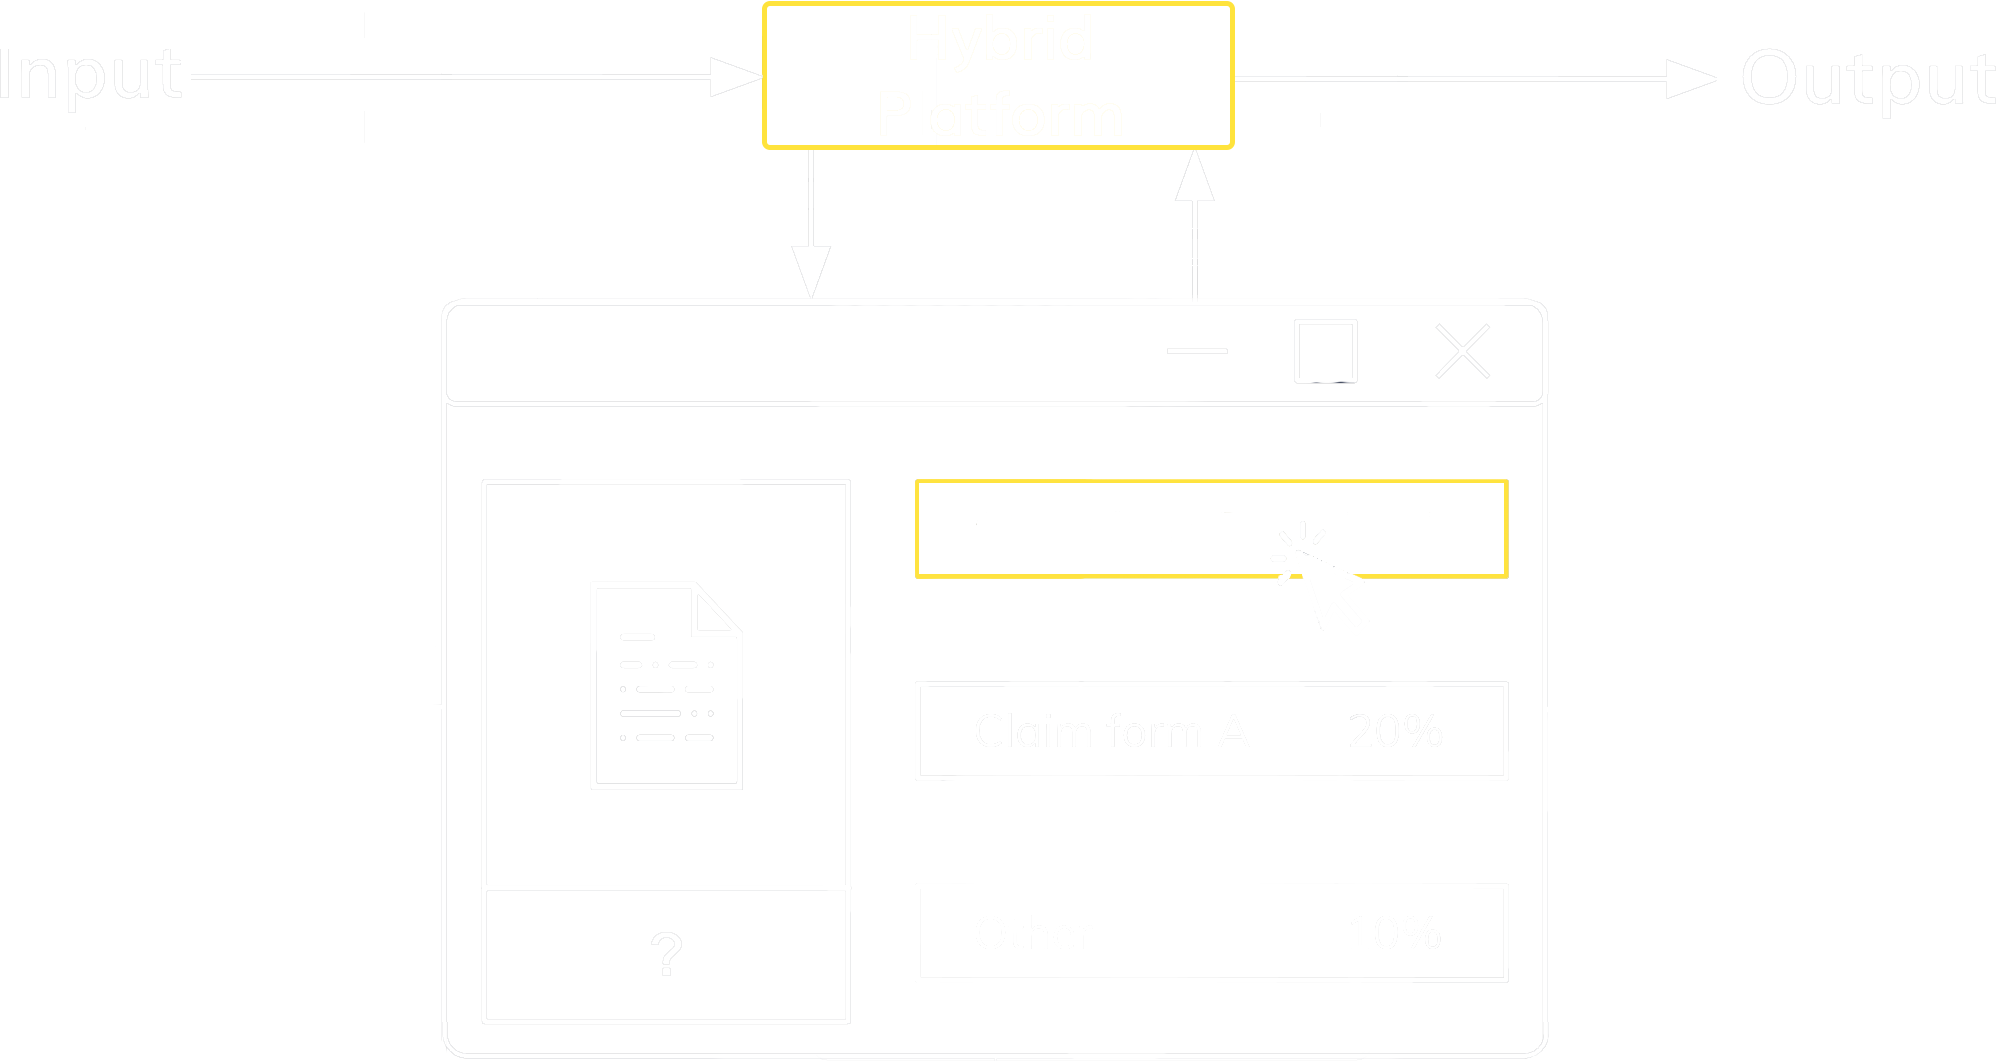 Flow chart of integrating hybrid platform into input and output process